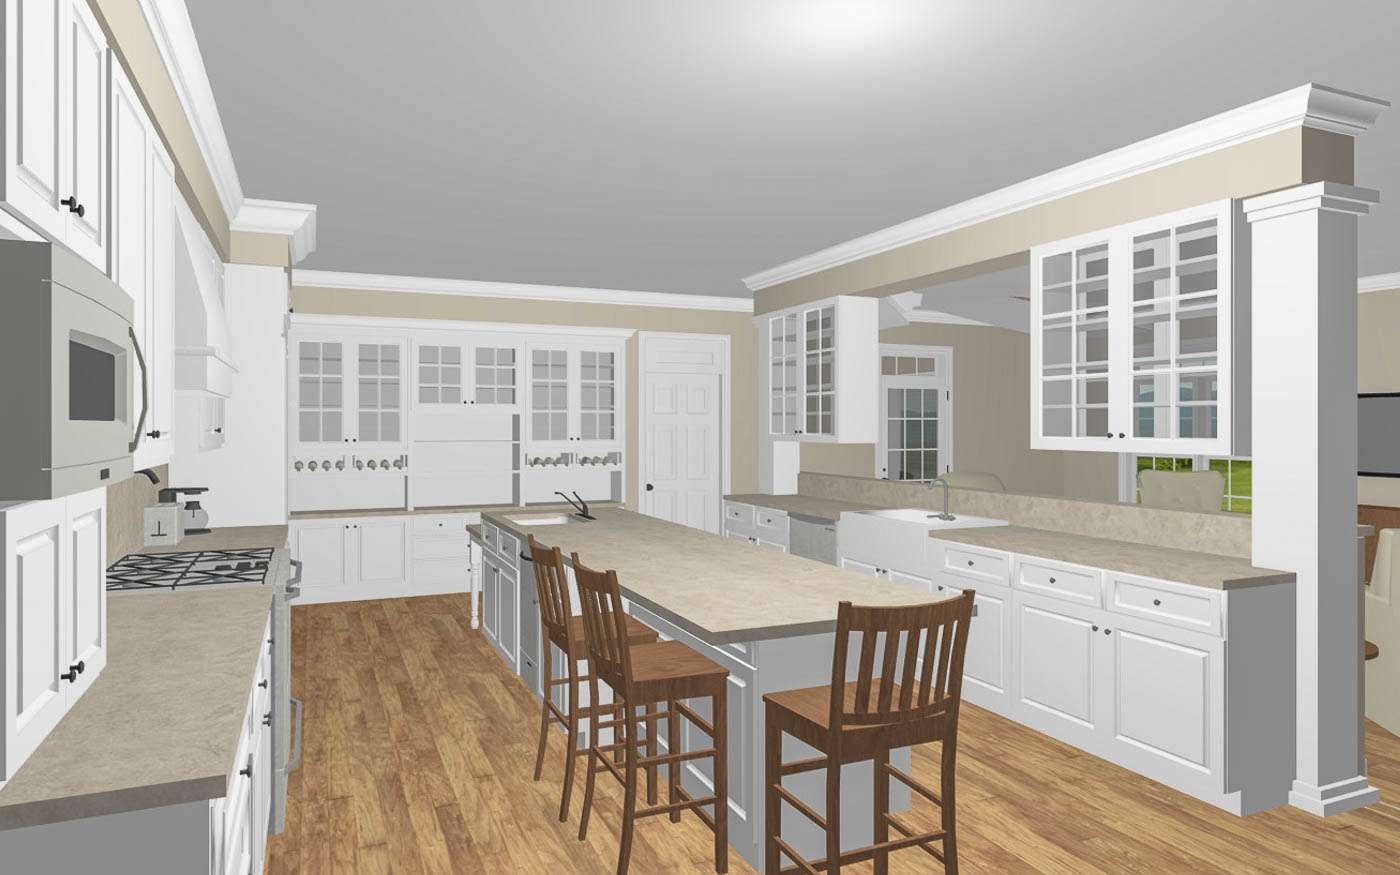 ngle Family Compound Kitchen Perspective 2